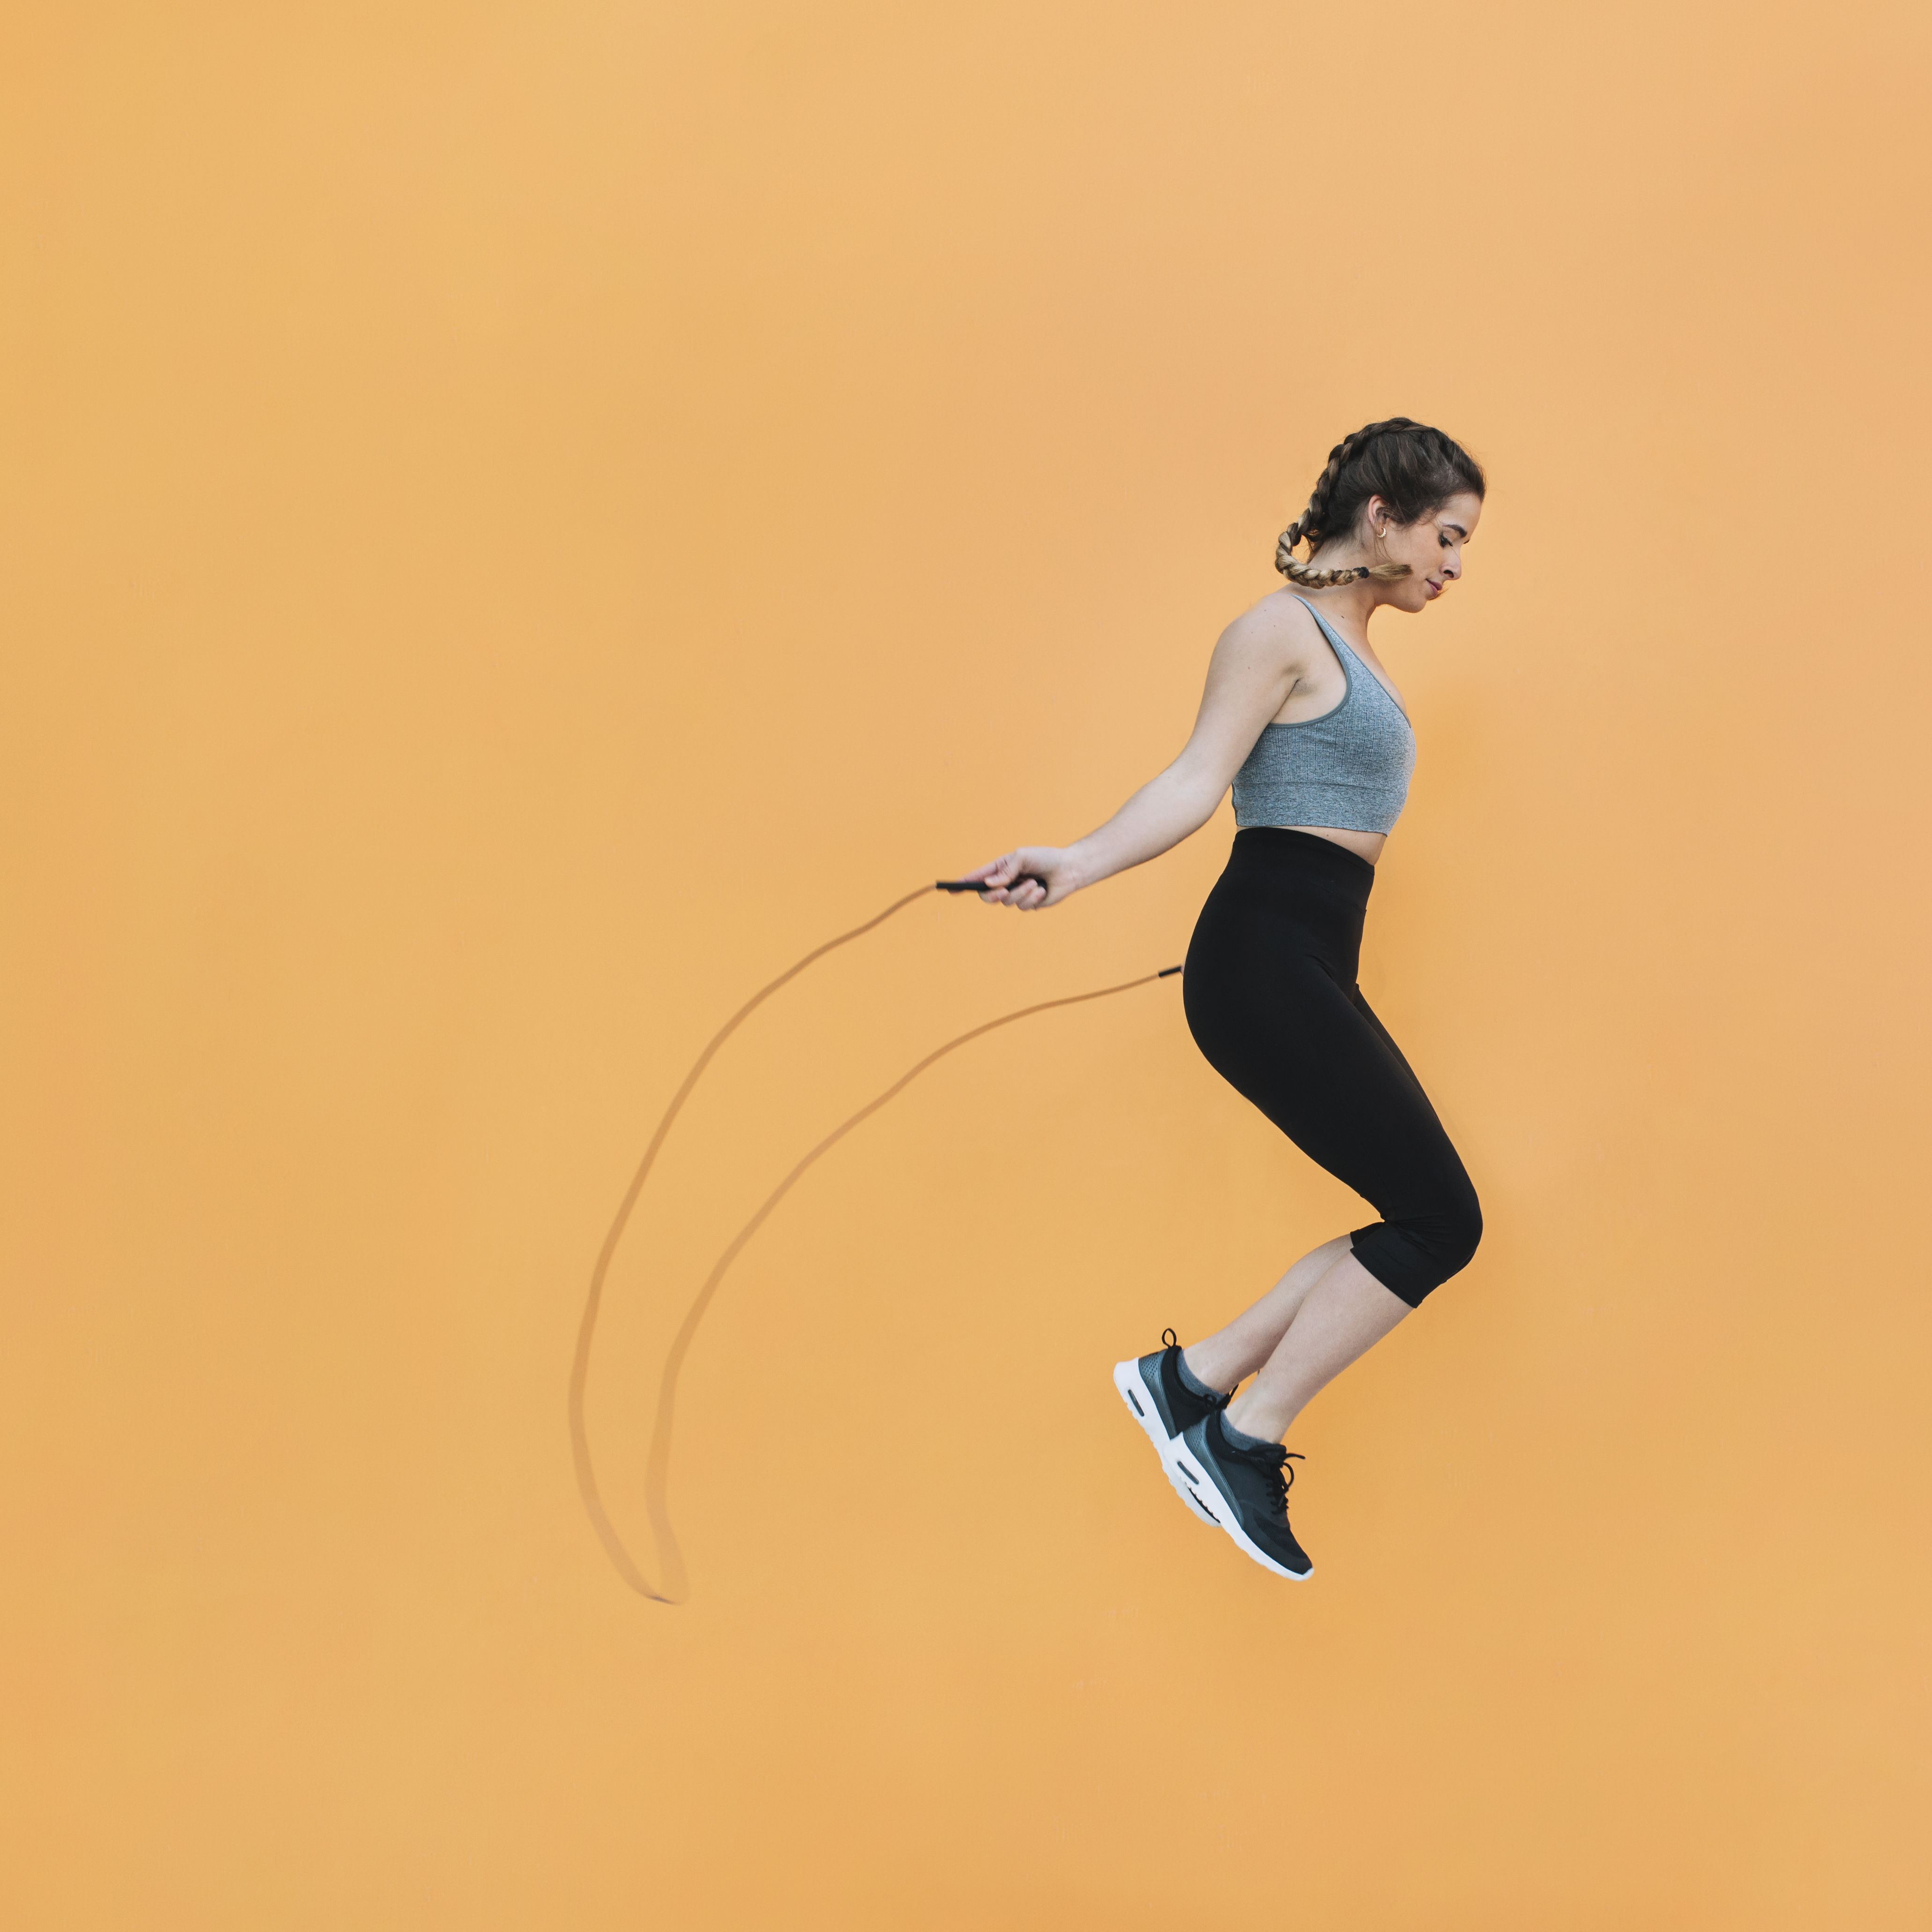 Work out 🏃🏽‍♀️like a pro with the Fitness Factor Adjustable Jump Rope. Skip rope smoother and faster...